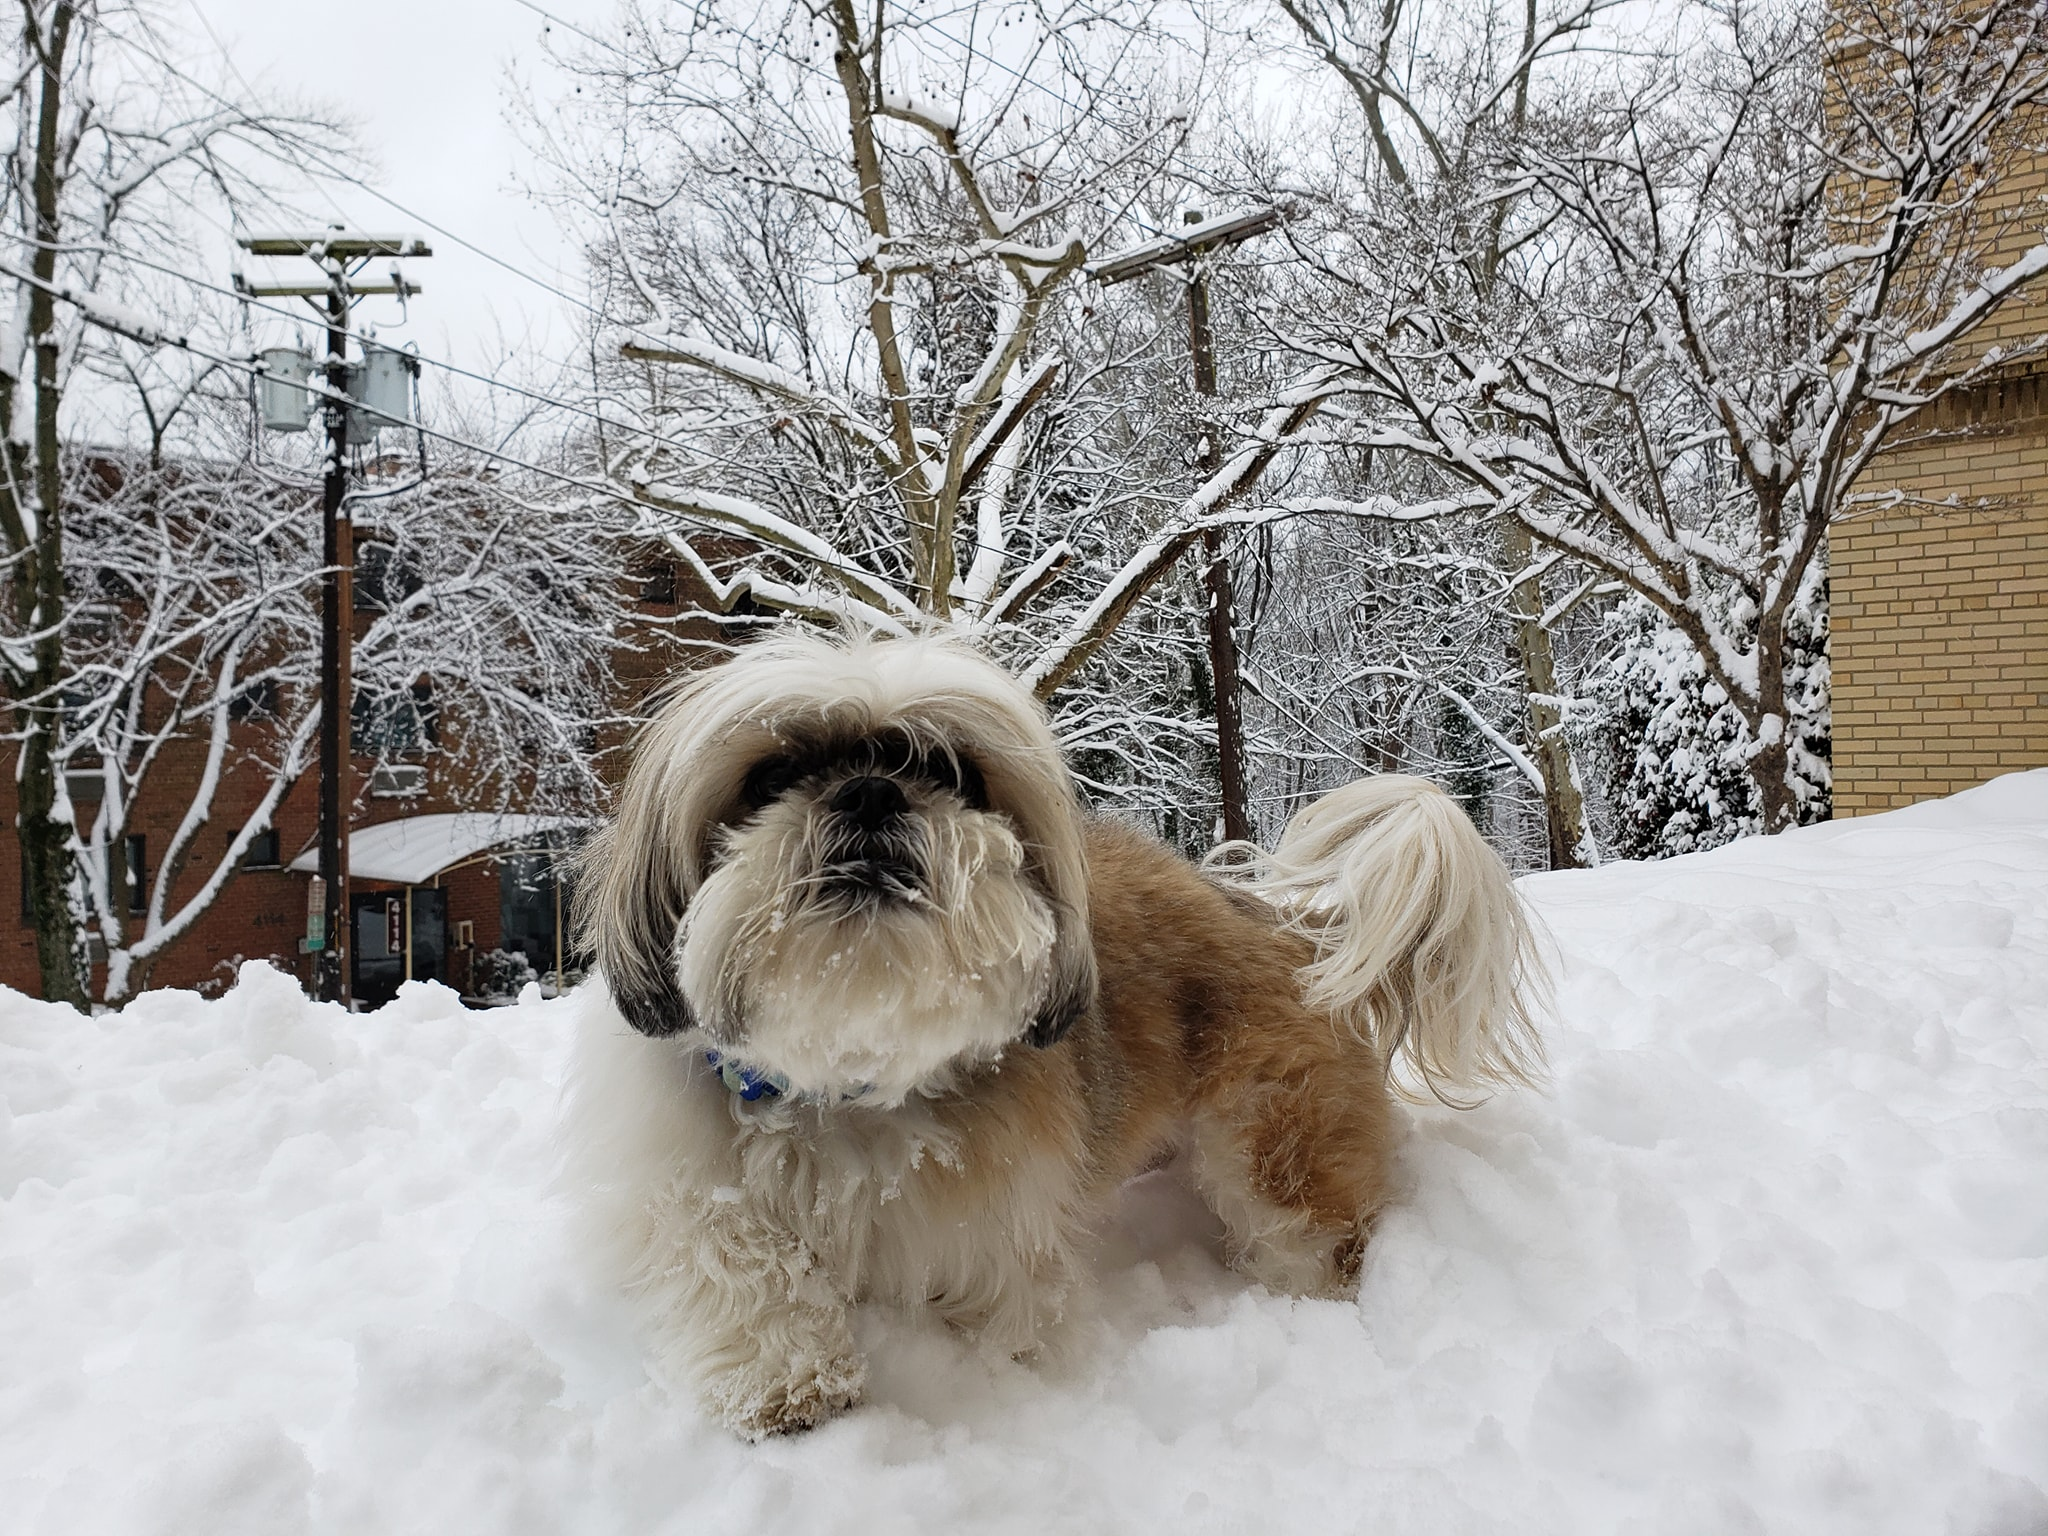 SNOW DAY! Only thing better than (possibly) getting the day off work, is seeing the joy in your pet's eyes as they prance around the fluffy white stuff. We asked for a photo of your pets in the snow, and BOY did you deliver! Check out these images of pups throughout the DMV having the best darn day of their lives! (Image: Courtesy{ }Desiree Carey)